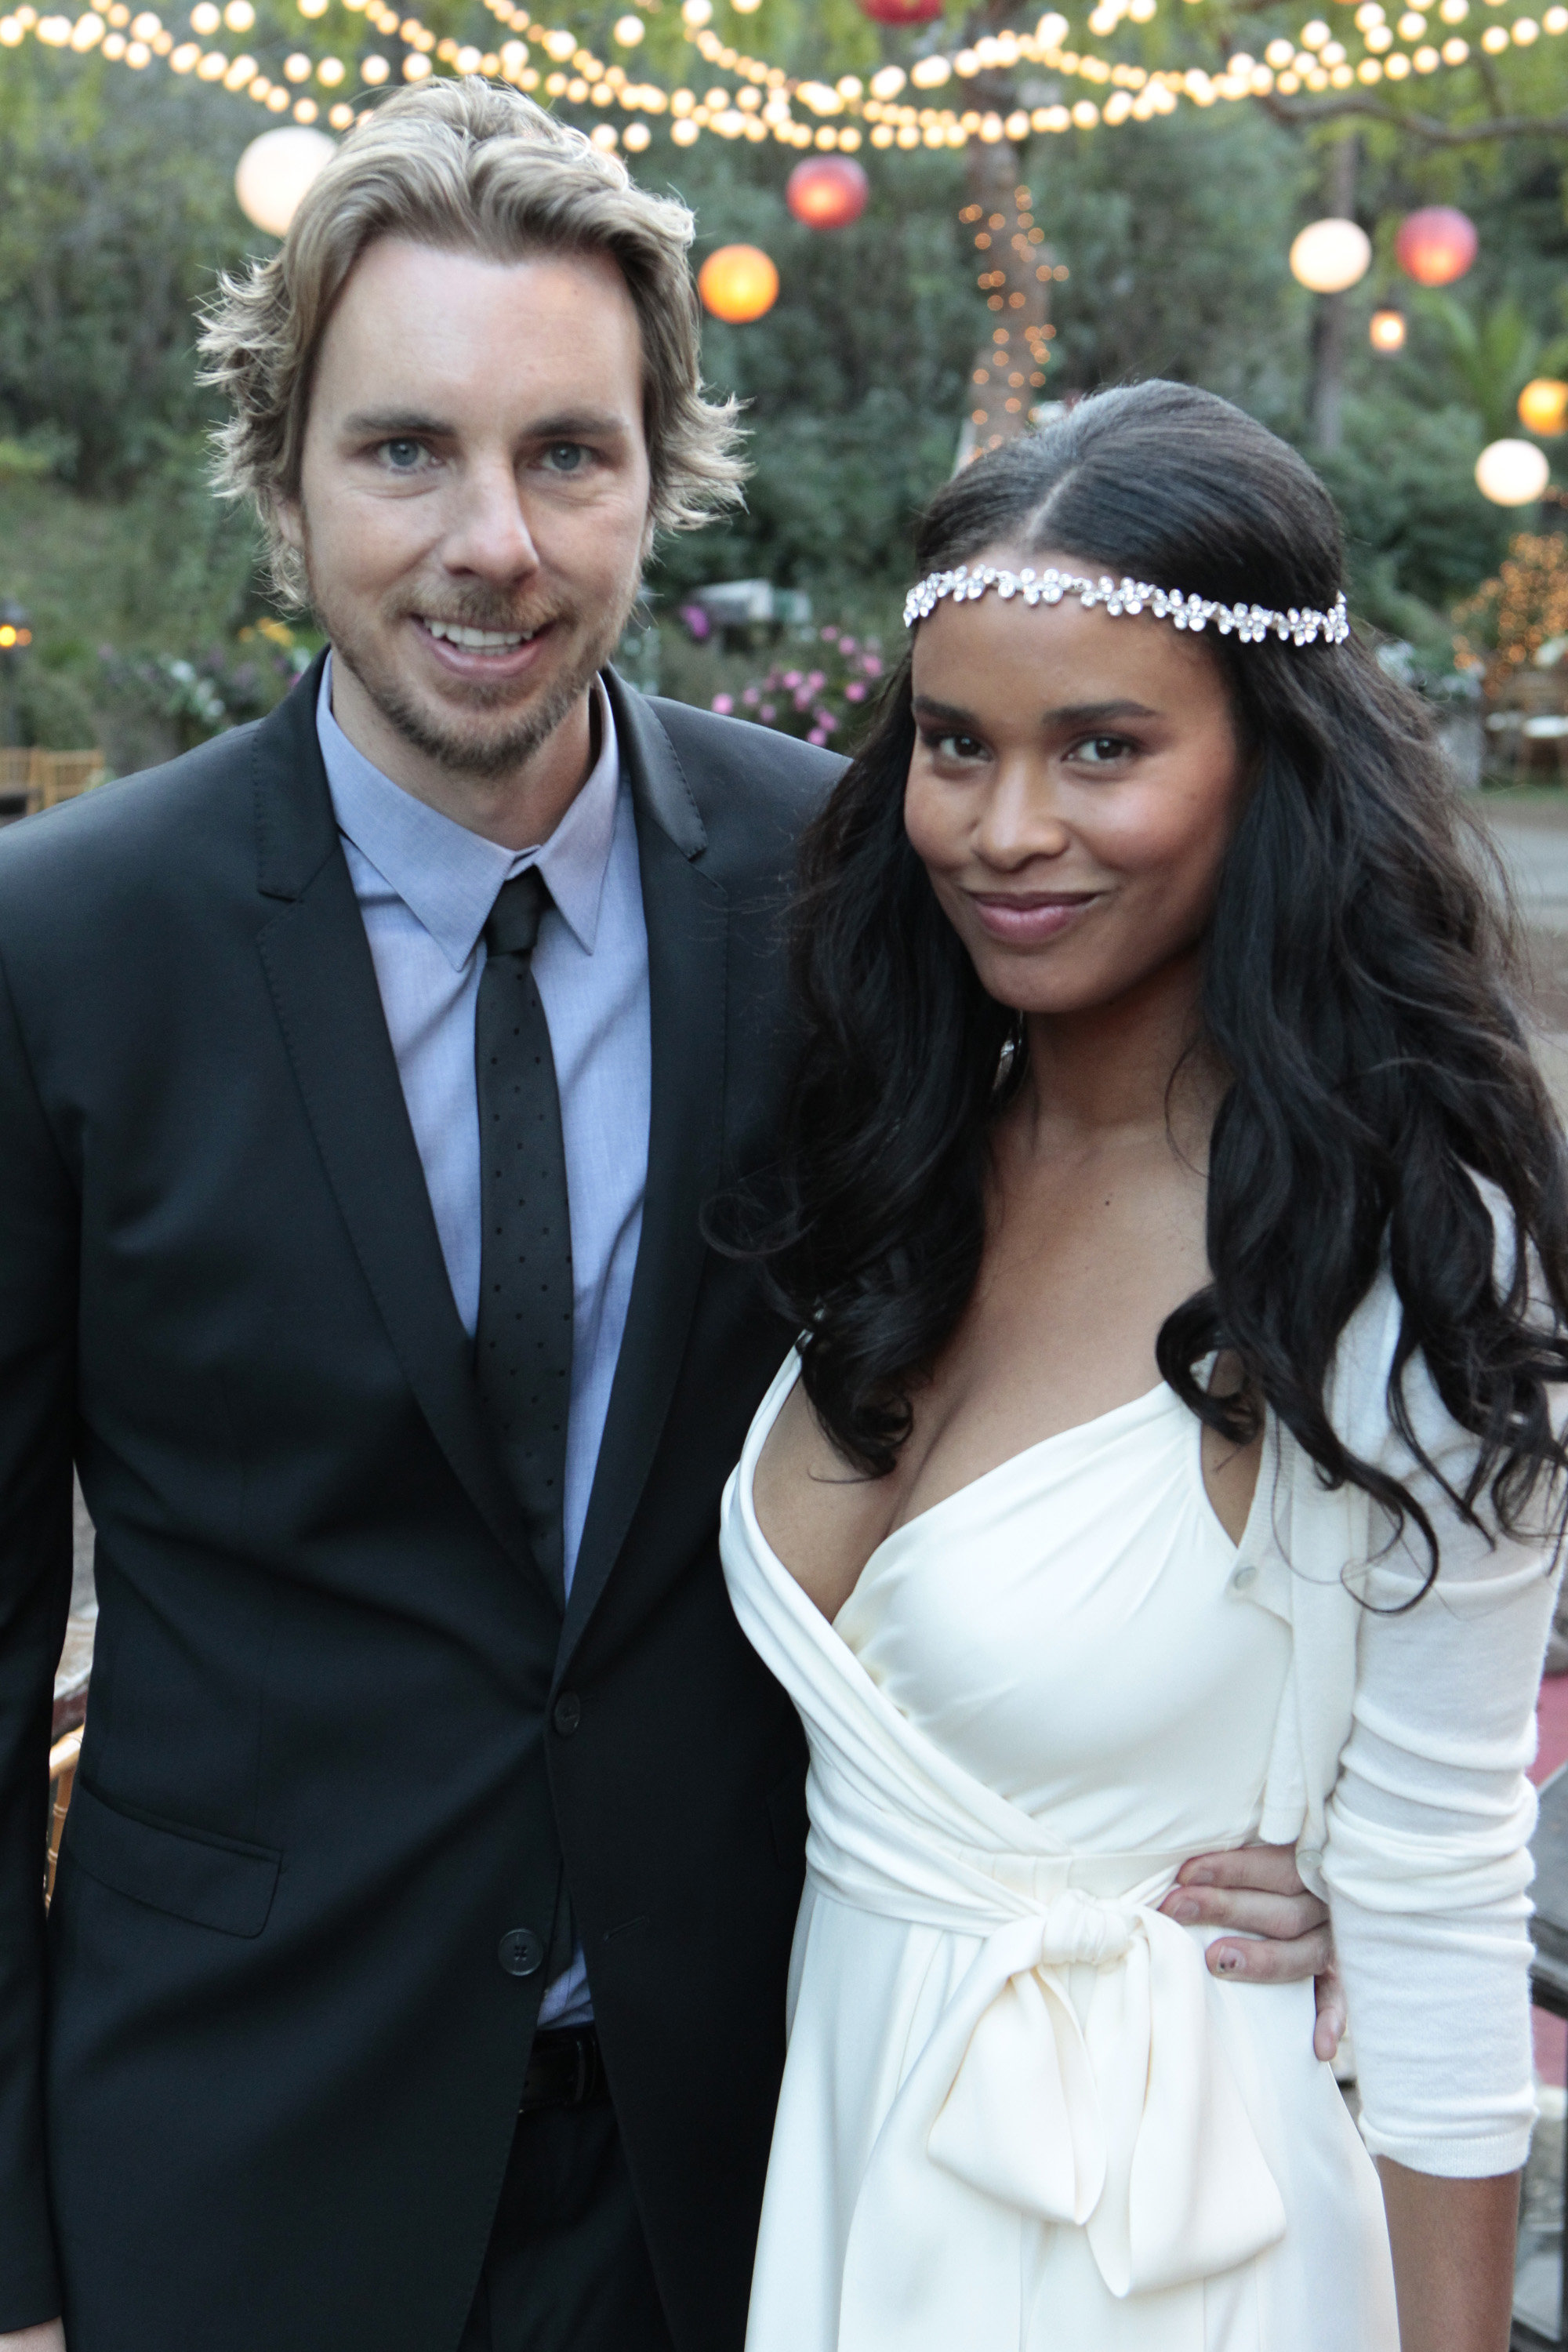 Dax Shepard and Joy Bryant